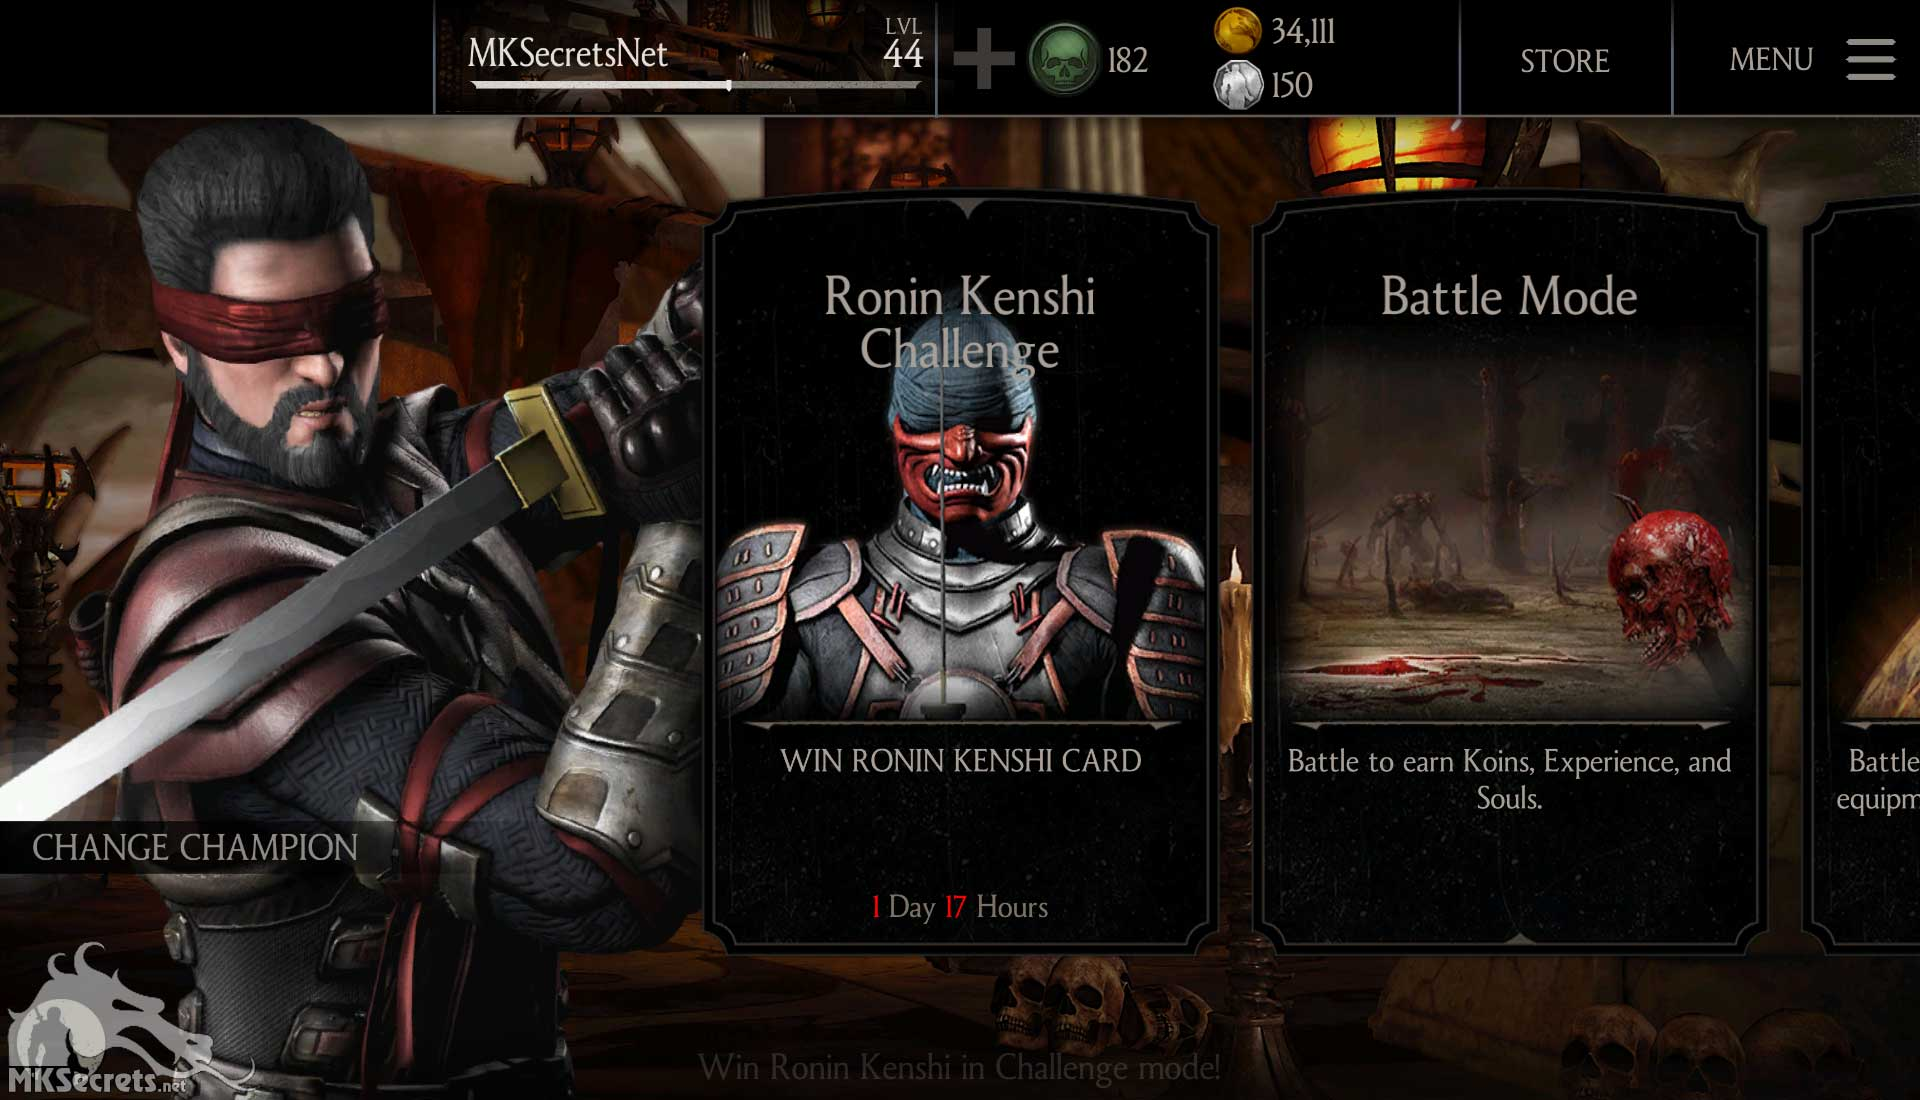 Mortal Kombat Secrets Mortal Kombat X News And Updates